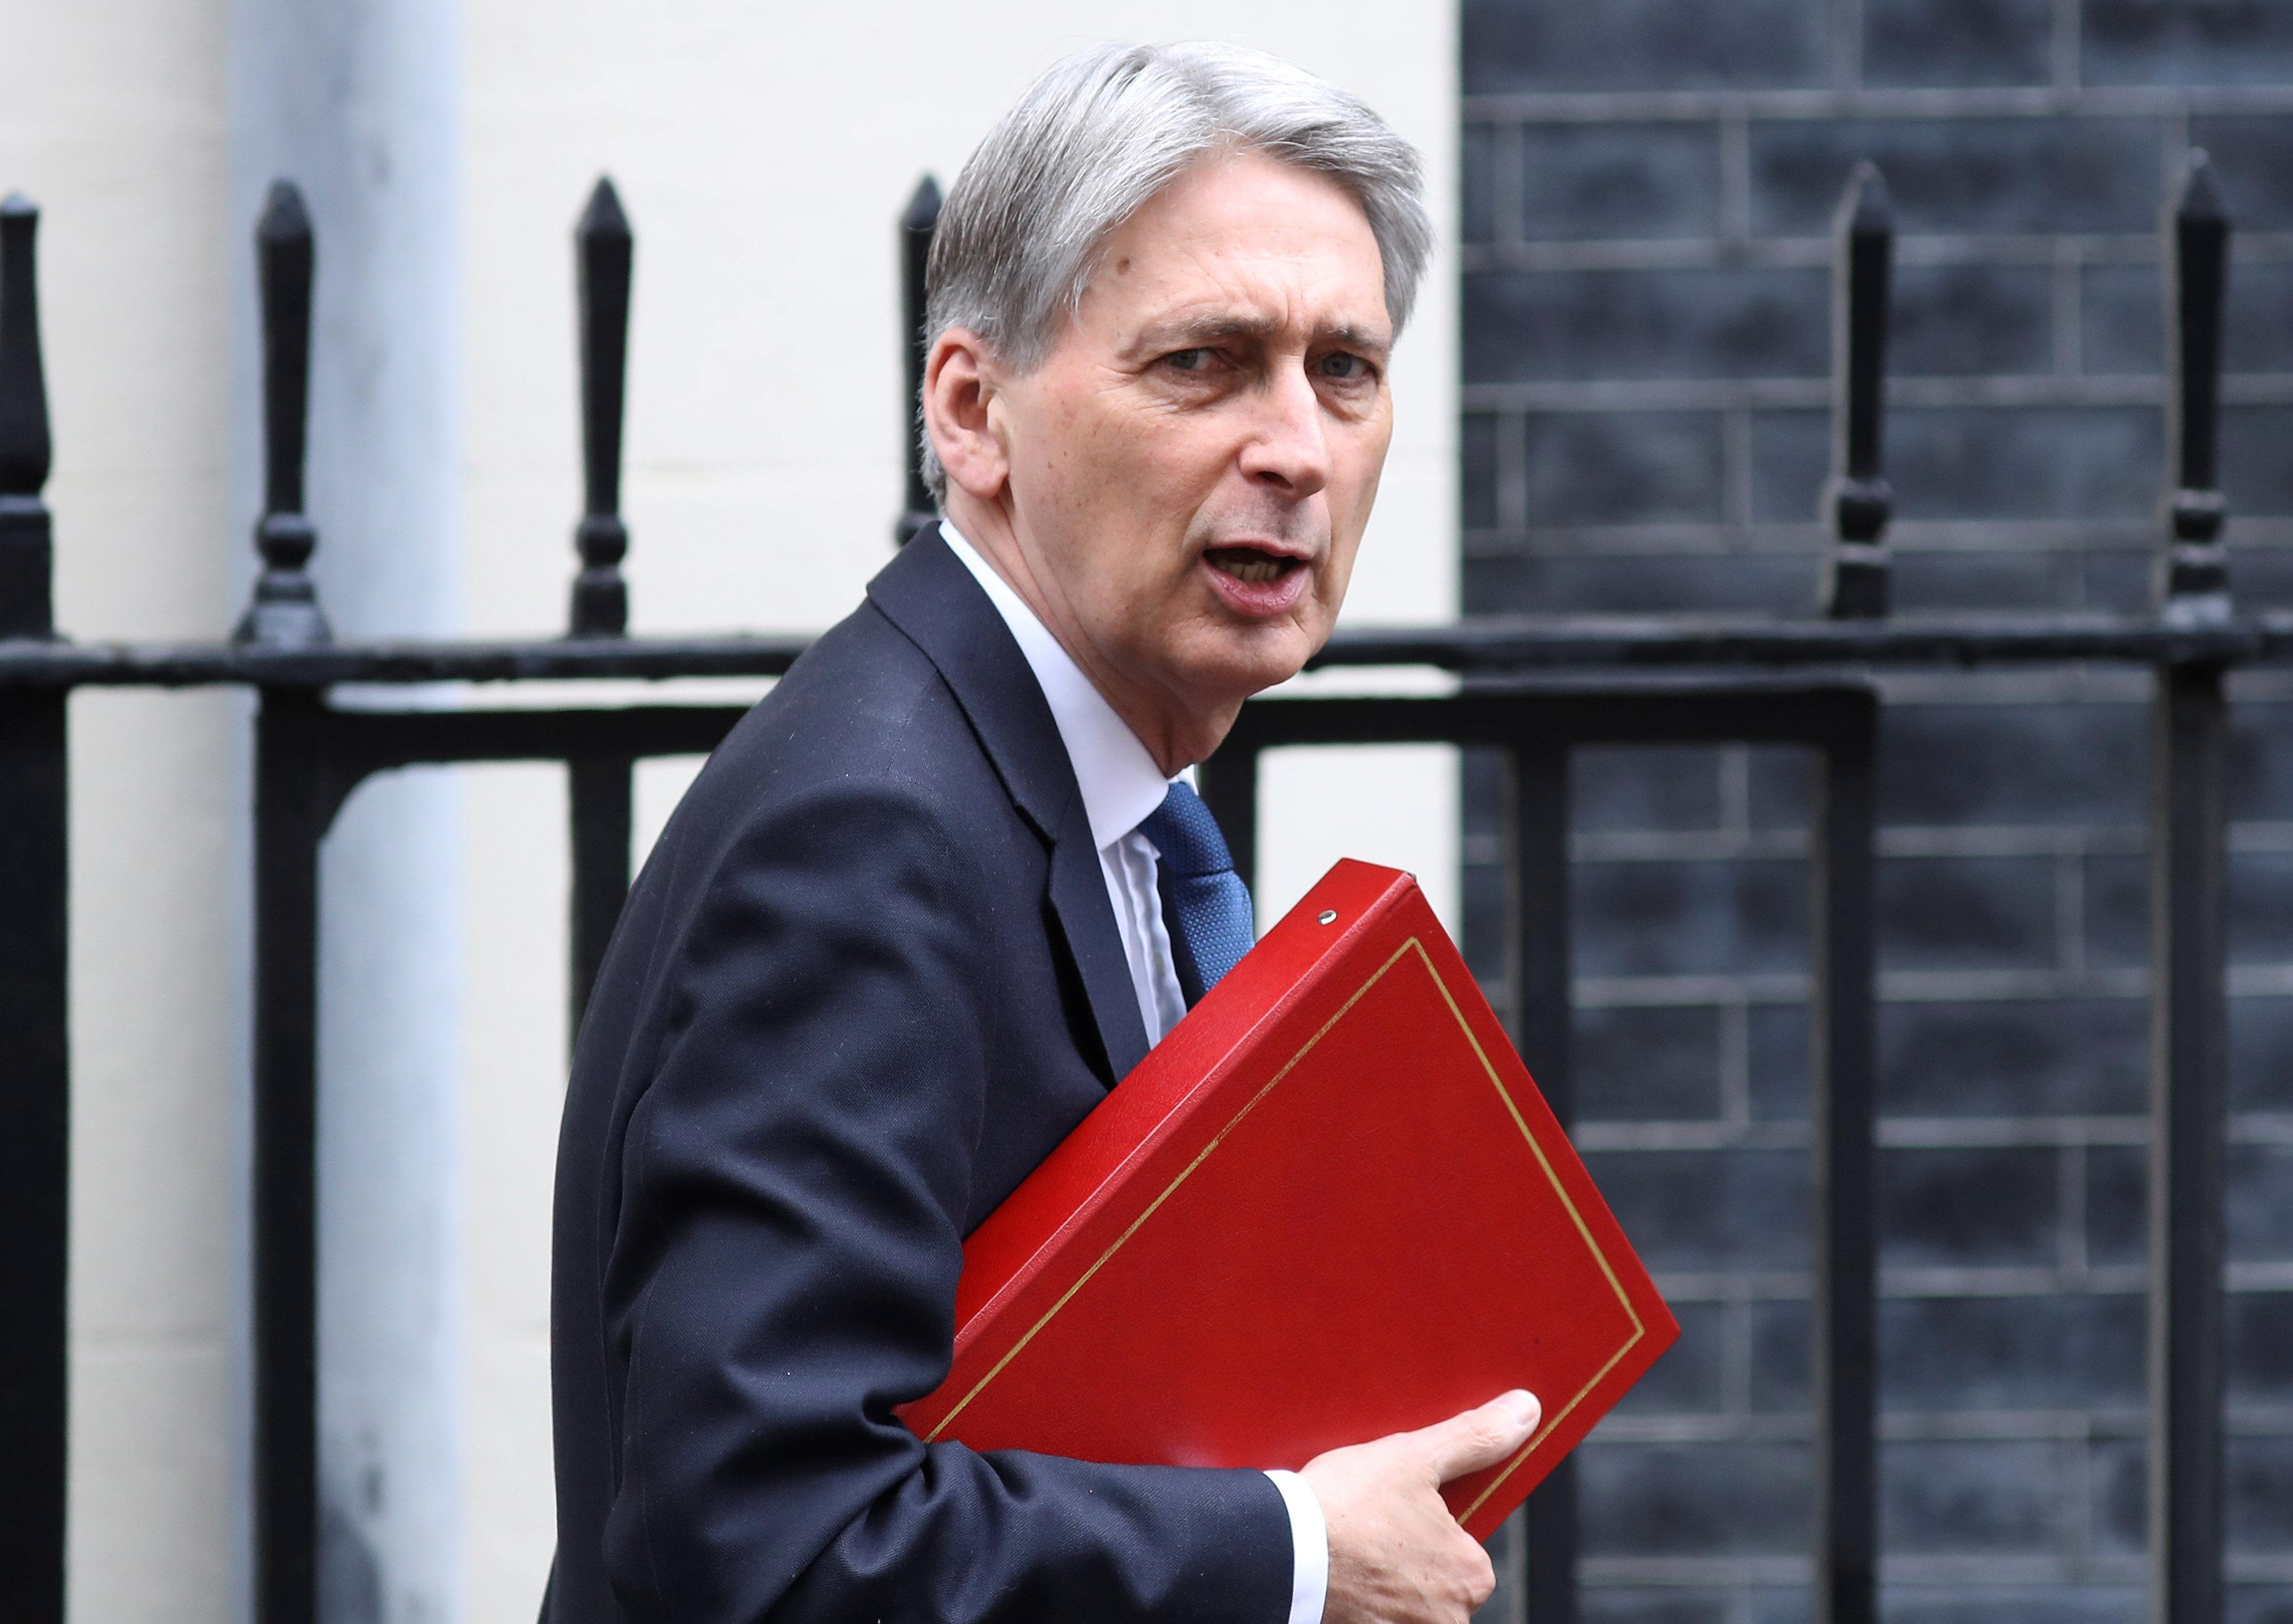 UK's Hammond - trade deal with EU will only happen if it is fair